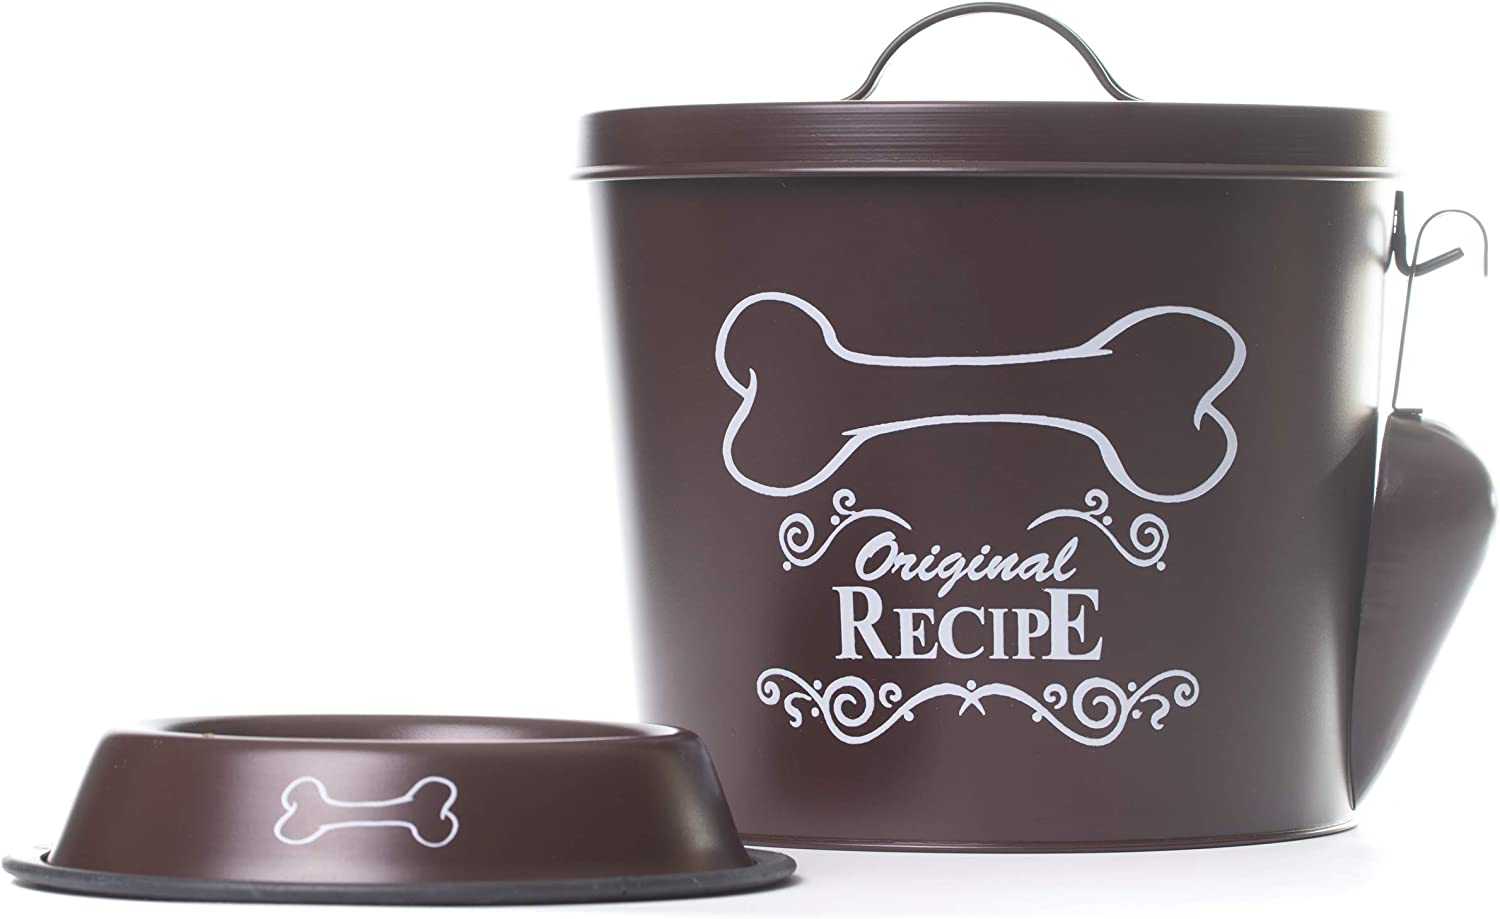 The PetSteel - Chocolate Dog Decorative Canister with Bowl and Scoop | Pet Food and Treat Container Storage Set | Airtight Lids | Fit's Up to 7 lbs of Treats or Food